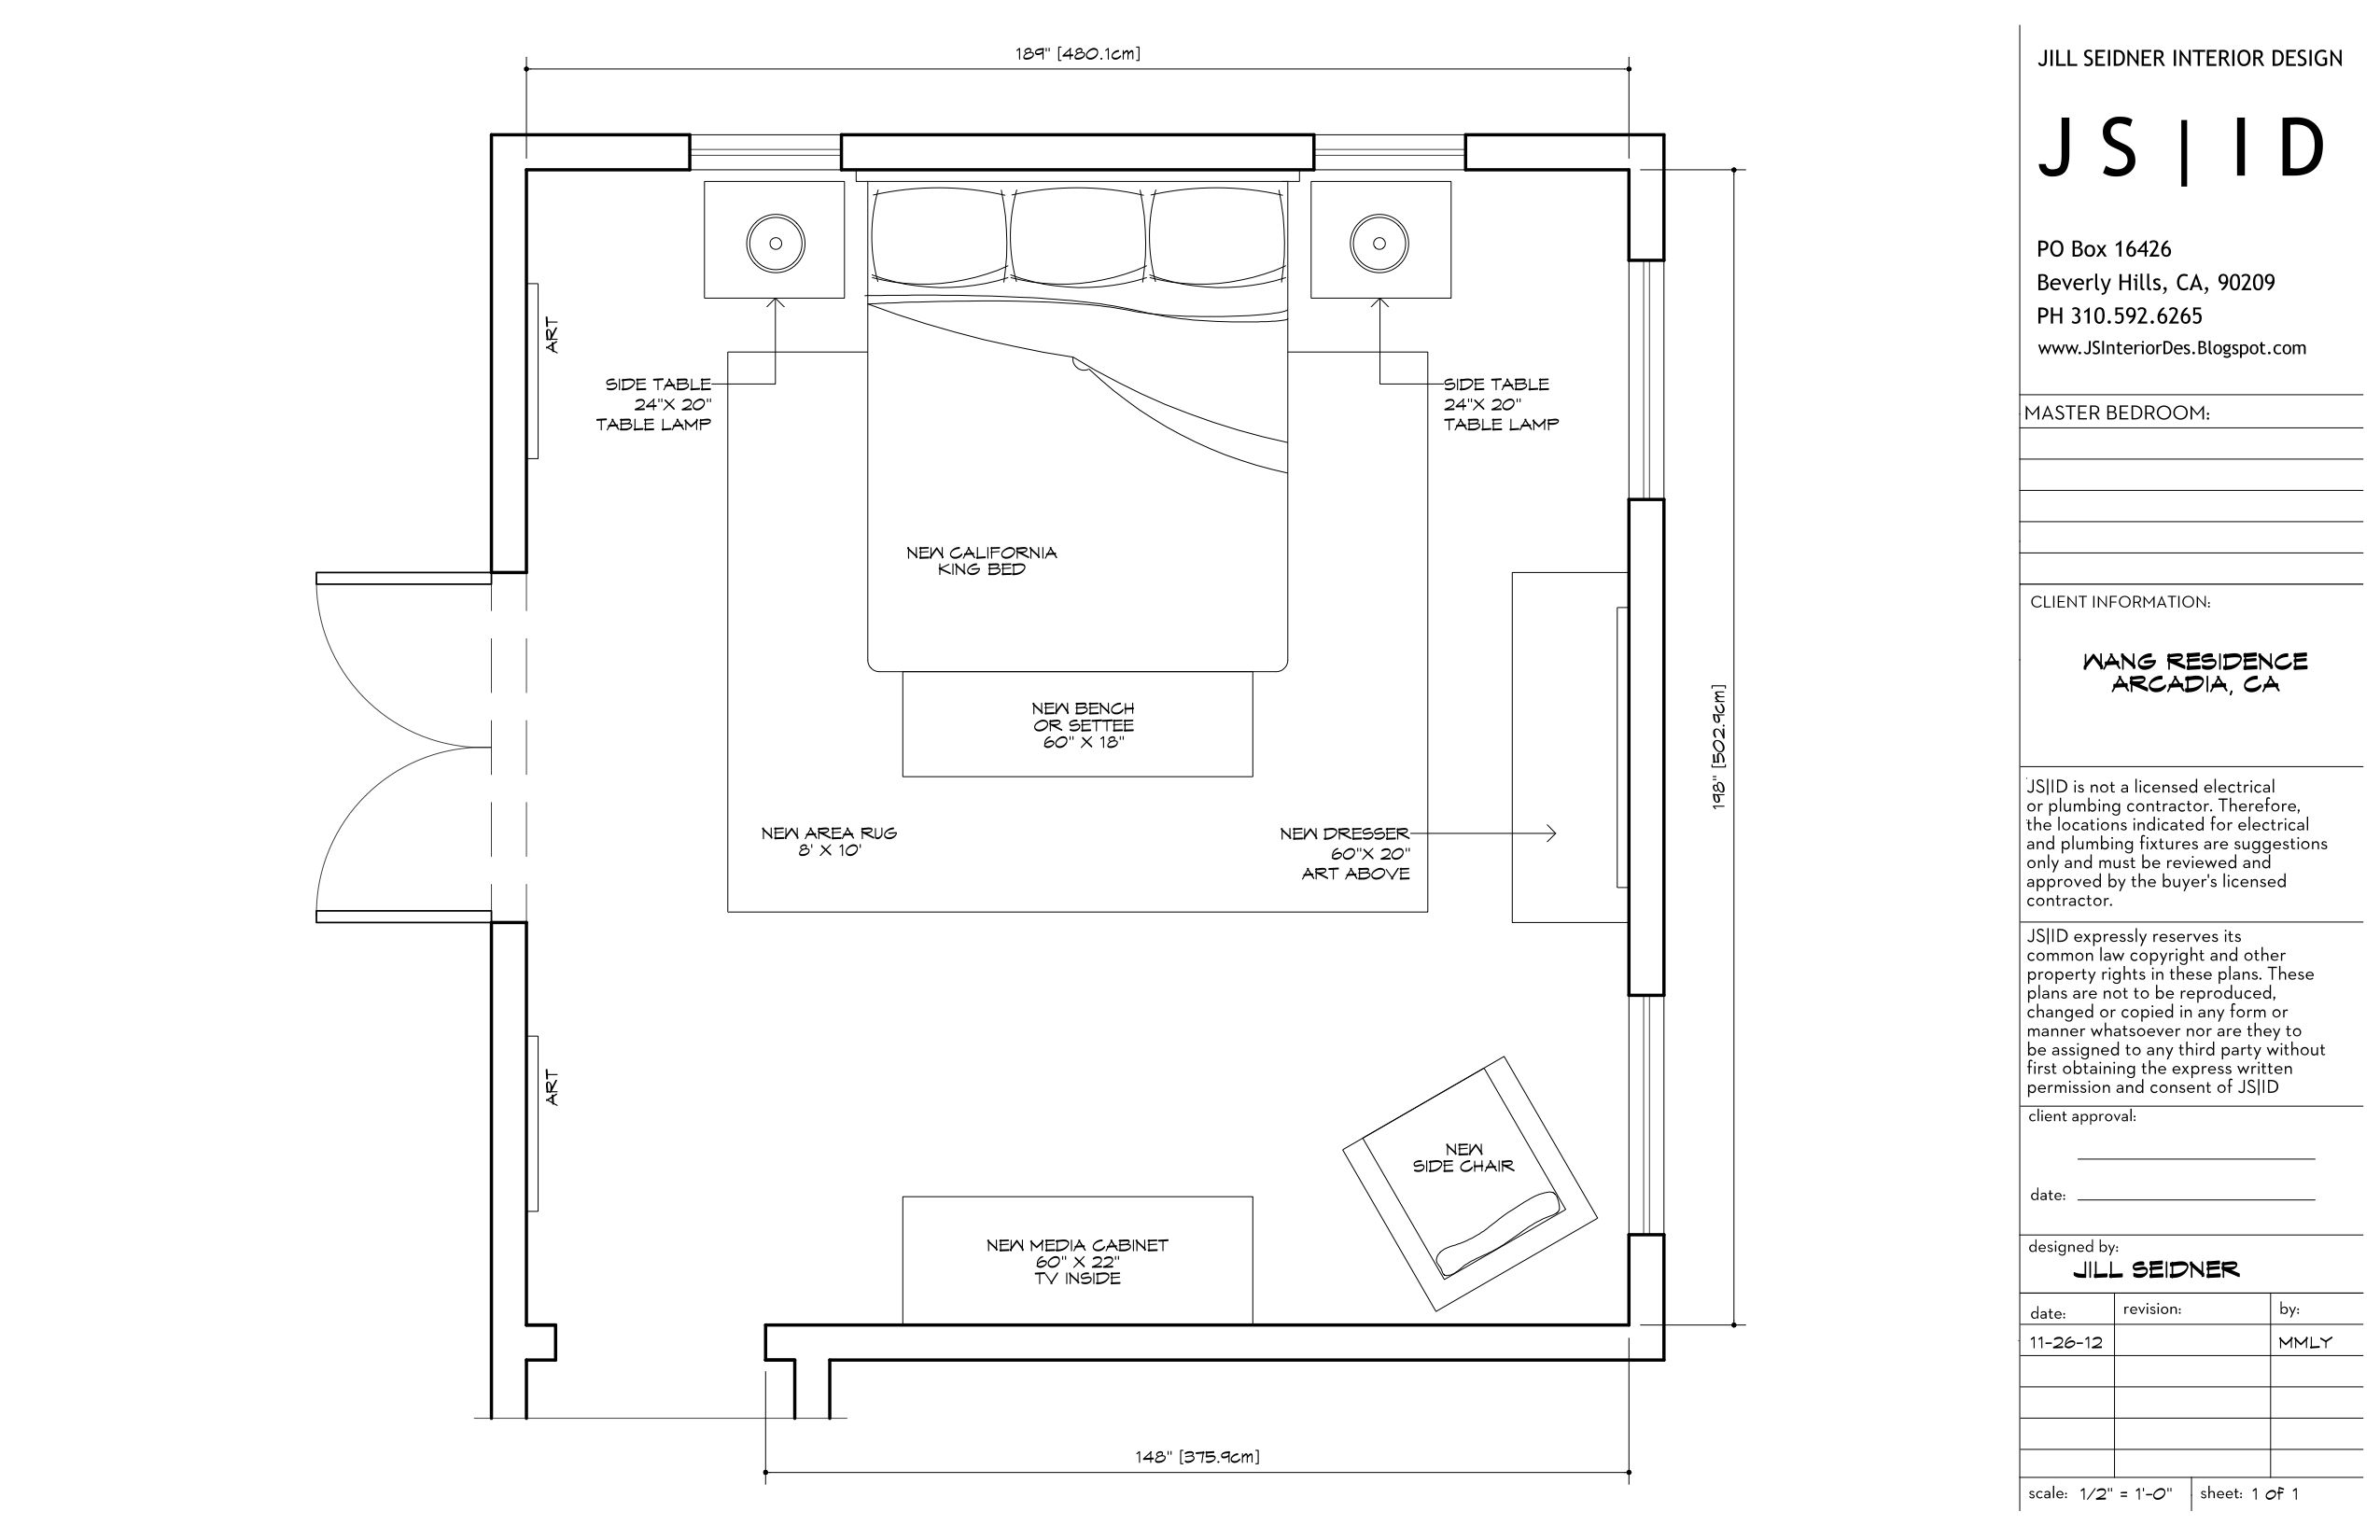 Bedroom Floor Plan With Furniture